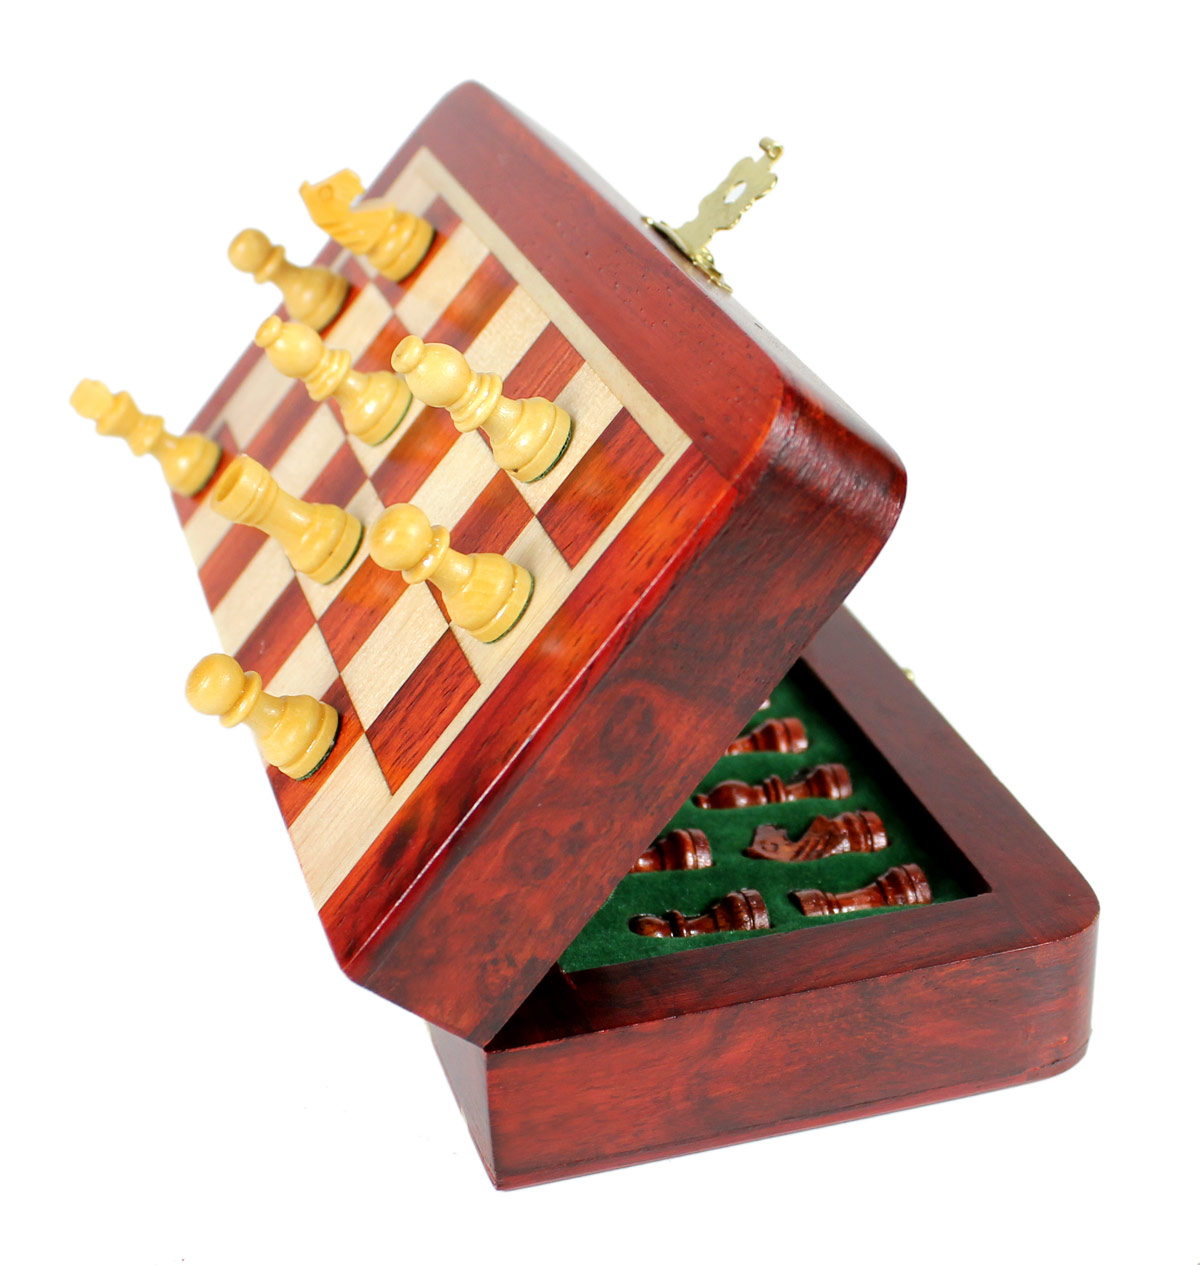 Each Chess piece is fitted with a powerful magnet at the bottom.